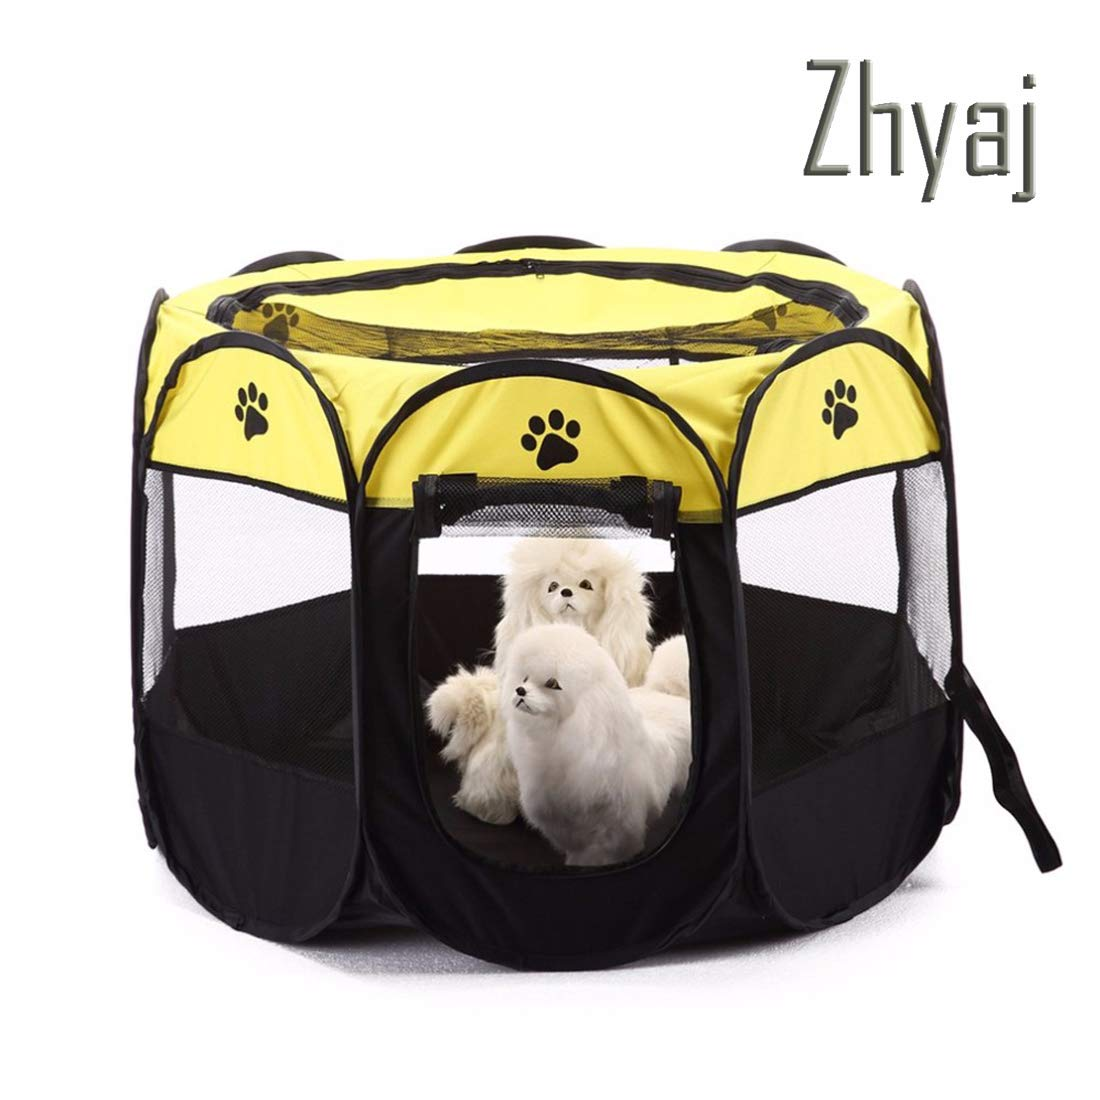 B Zhyaj Dog Kennel Outdoor, 8-Side Foldable Breathable Pets Dogs Tent Easy Operation Octagonal Fence Pets Cage Dog Bed Outdoor Extra Large Dog House Guinea Pig Cage,B